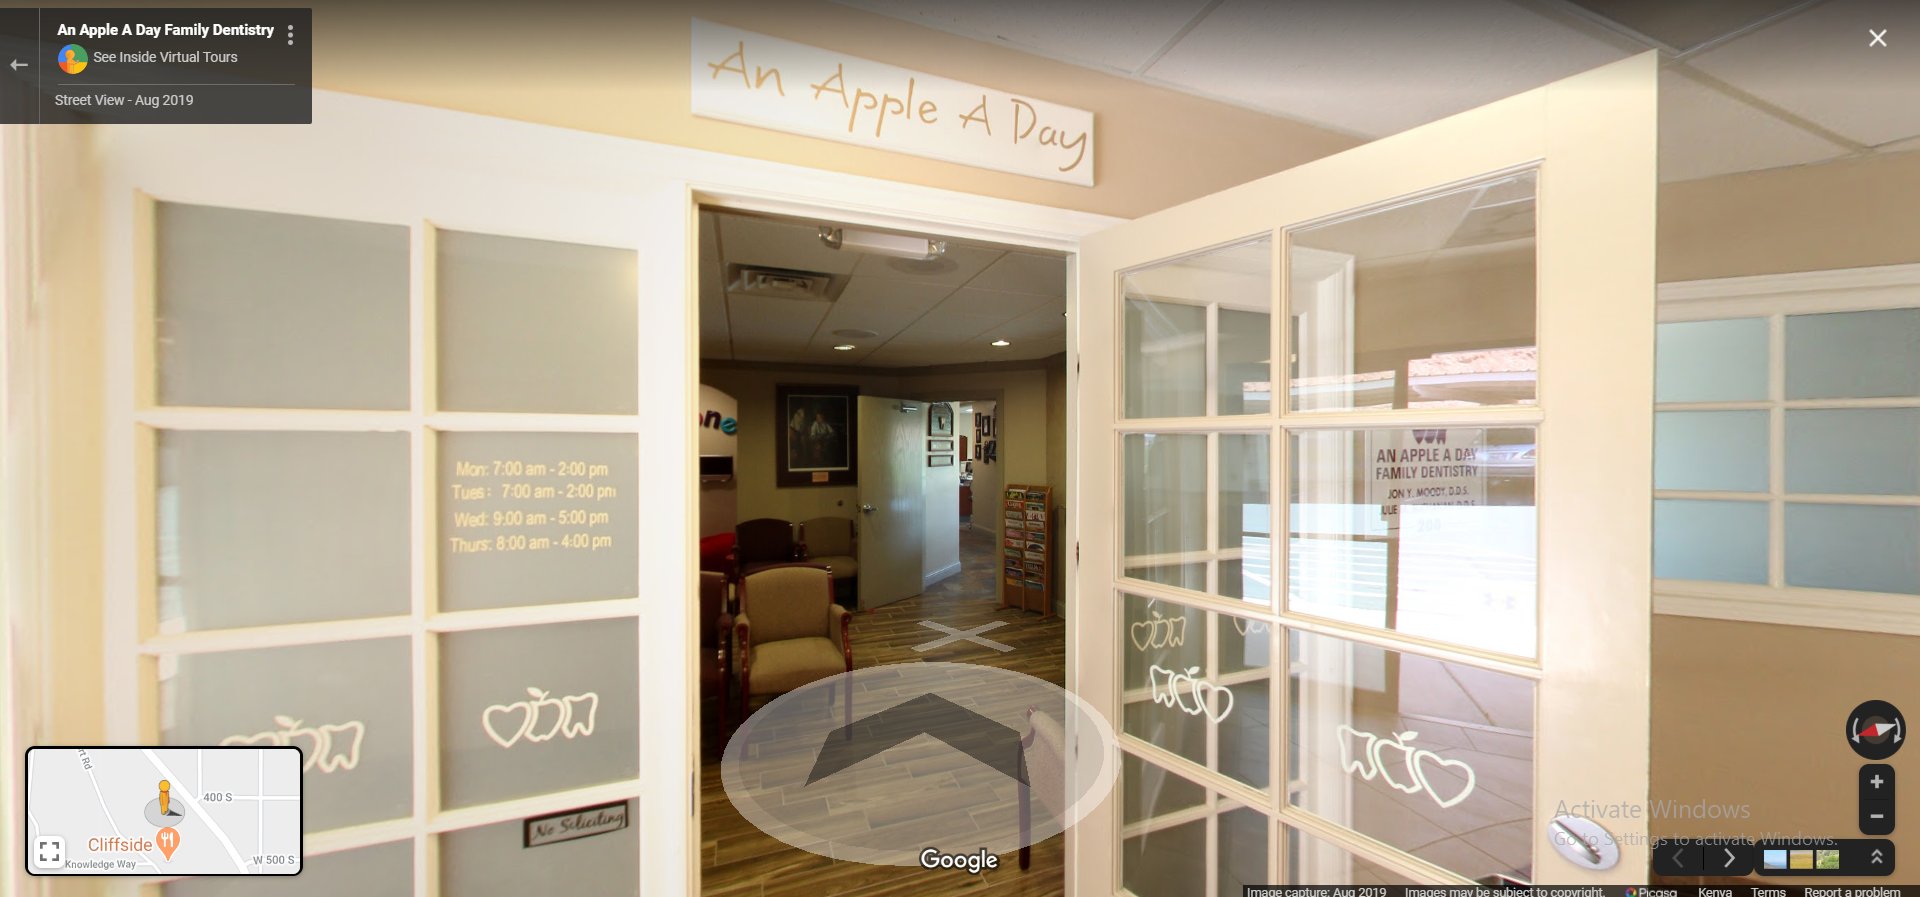 An Apple A Day Family Dentistry - St. George